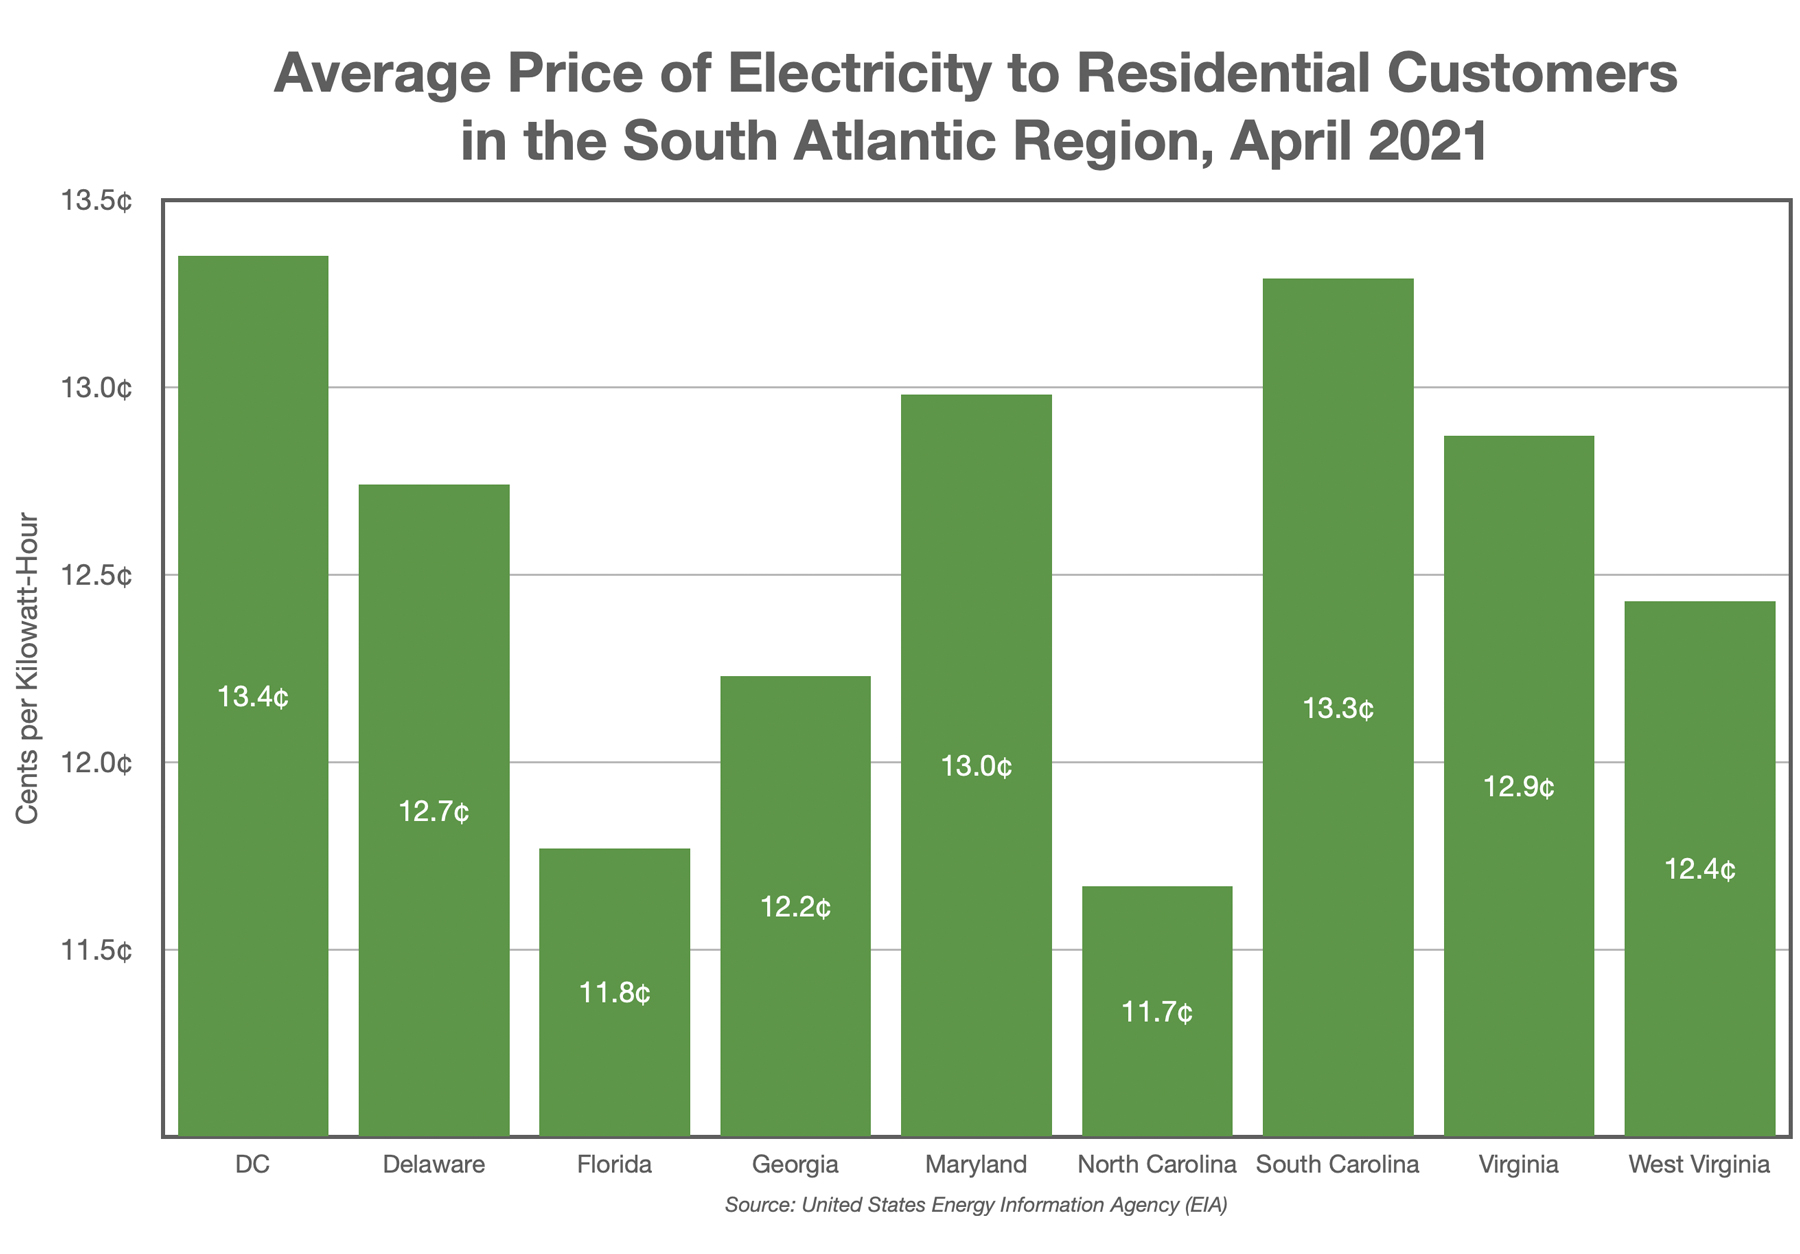 Average Price of Electricity to Residential Customers in the South Atlantic Region, April 2021